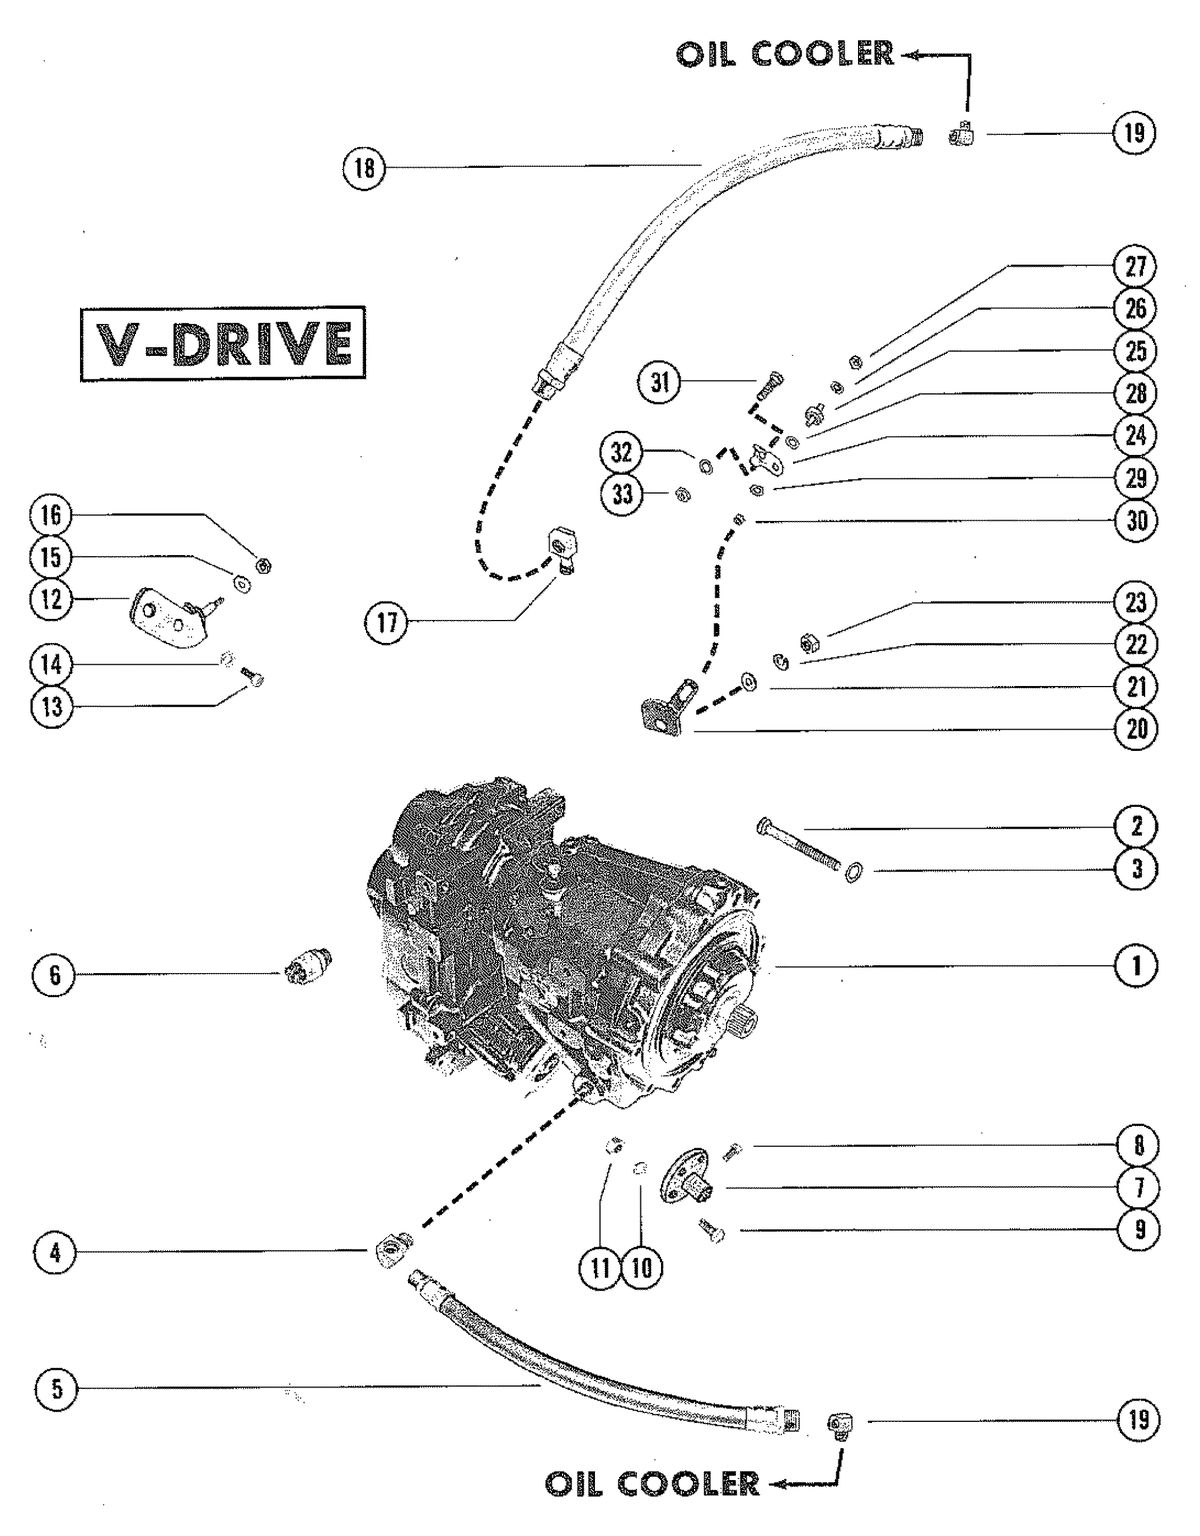 MERCRUISER 255 ENGINE TRANSMISSION AND RELATED PARTS (V-DRIVE)